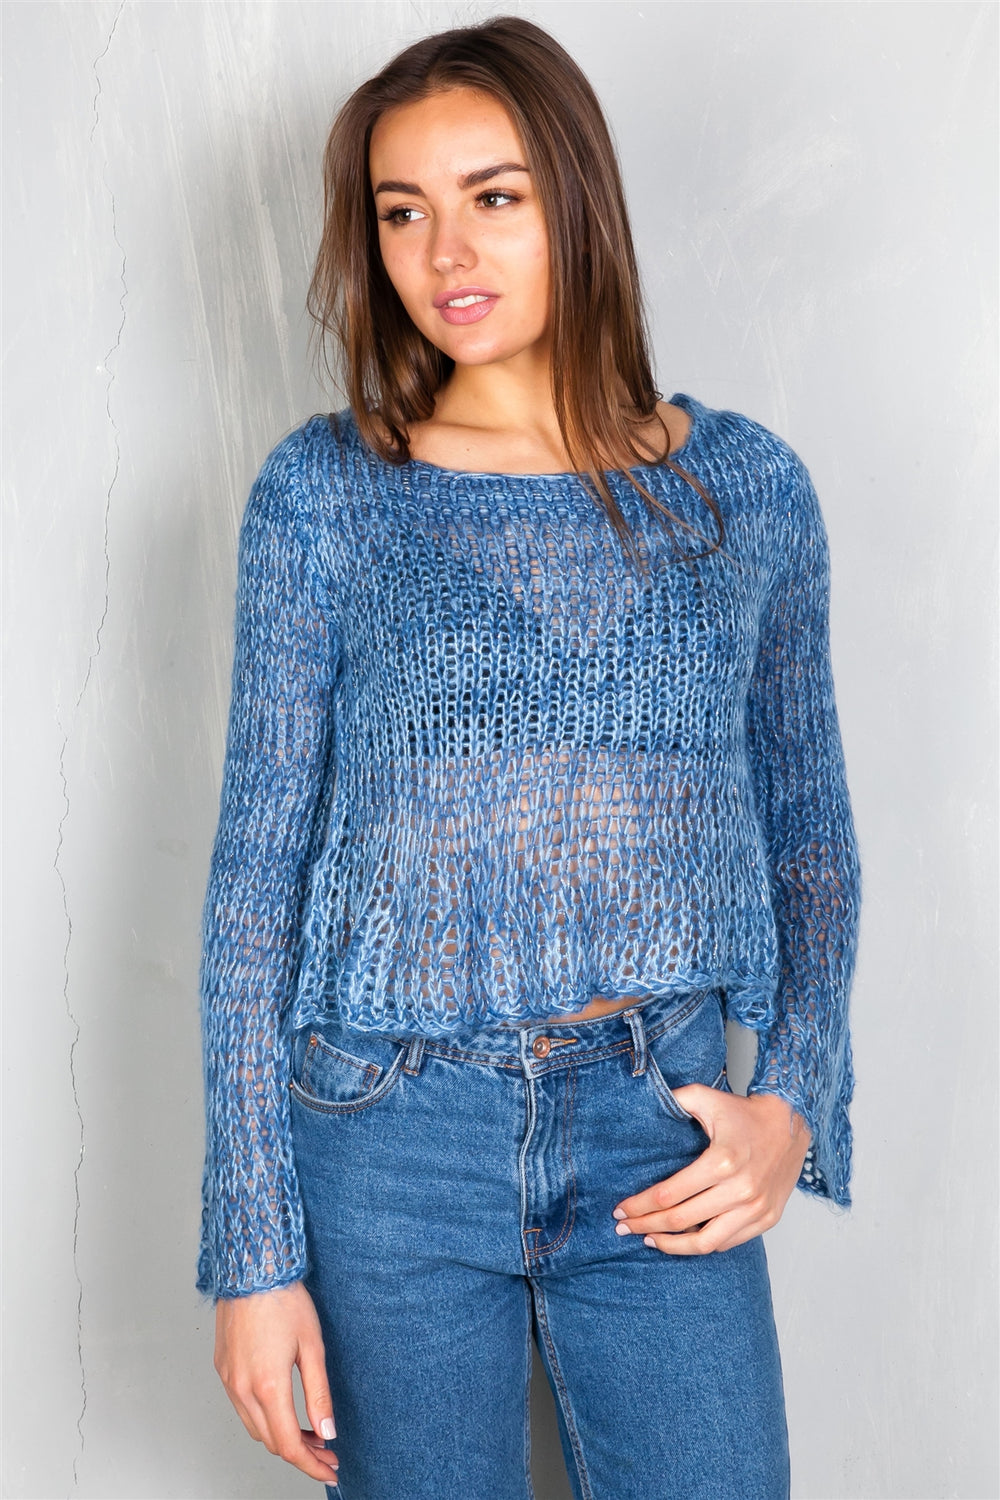 Trendy Hole Knitted Crop Top Sweater Siin Bees